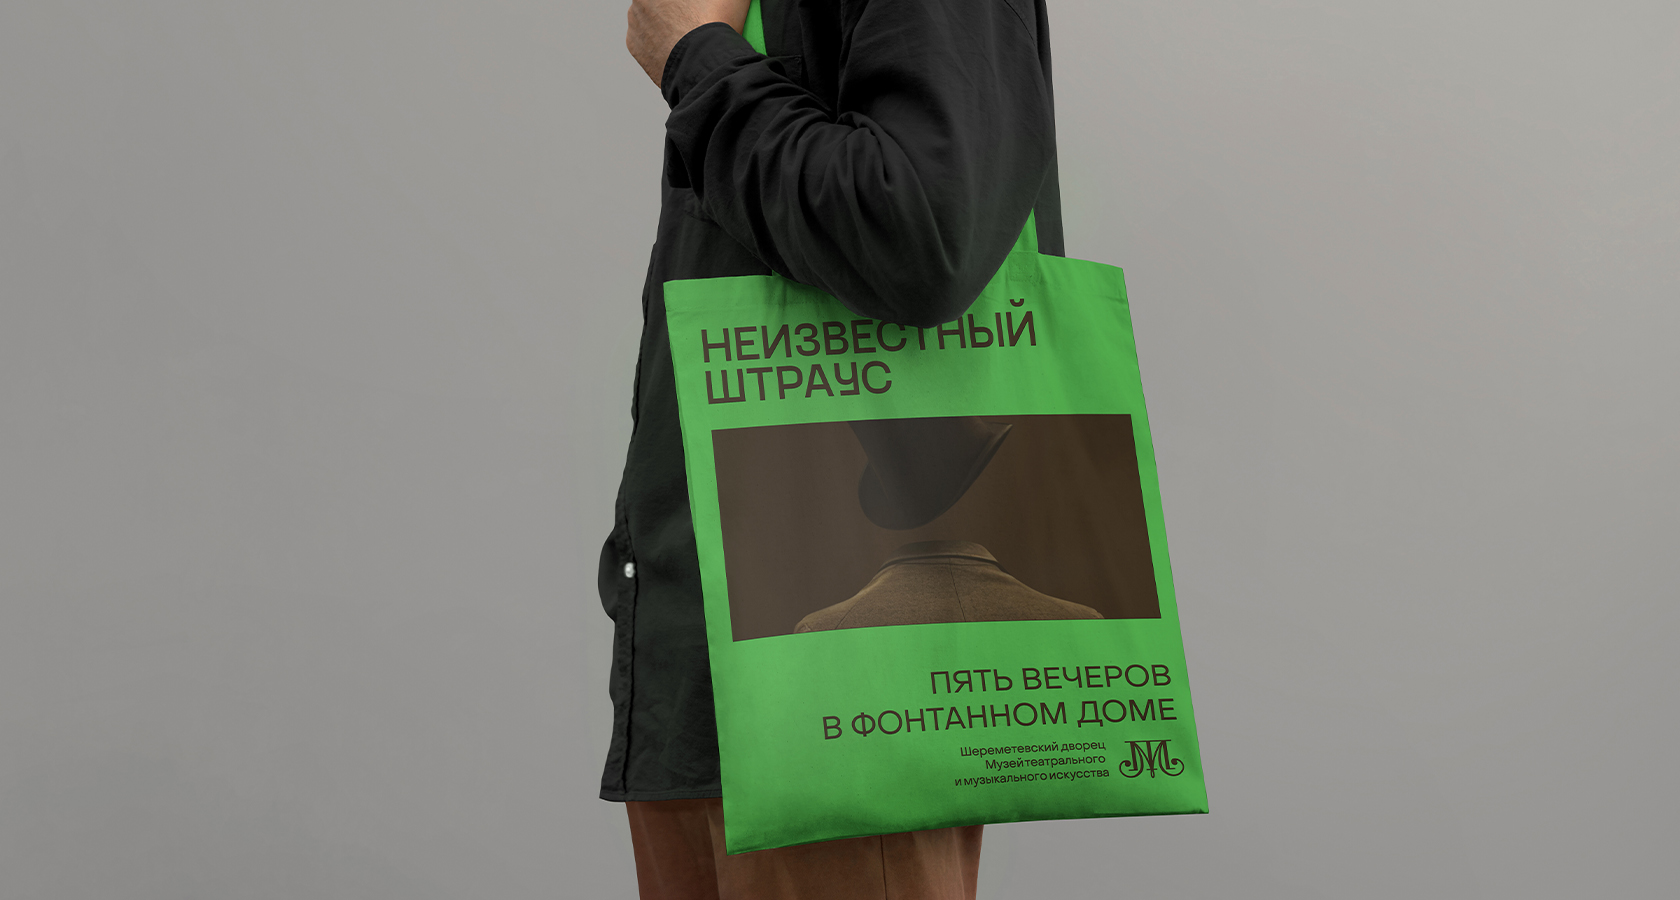 The Sheremetev Palace Taps Ferma Agency to Design Posters